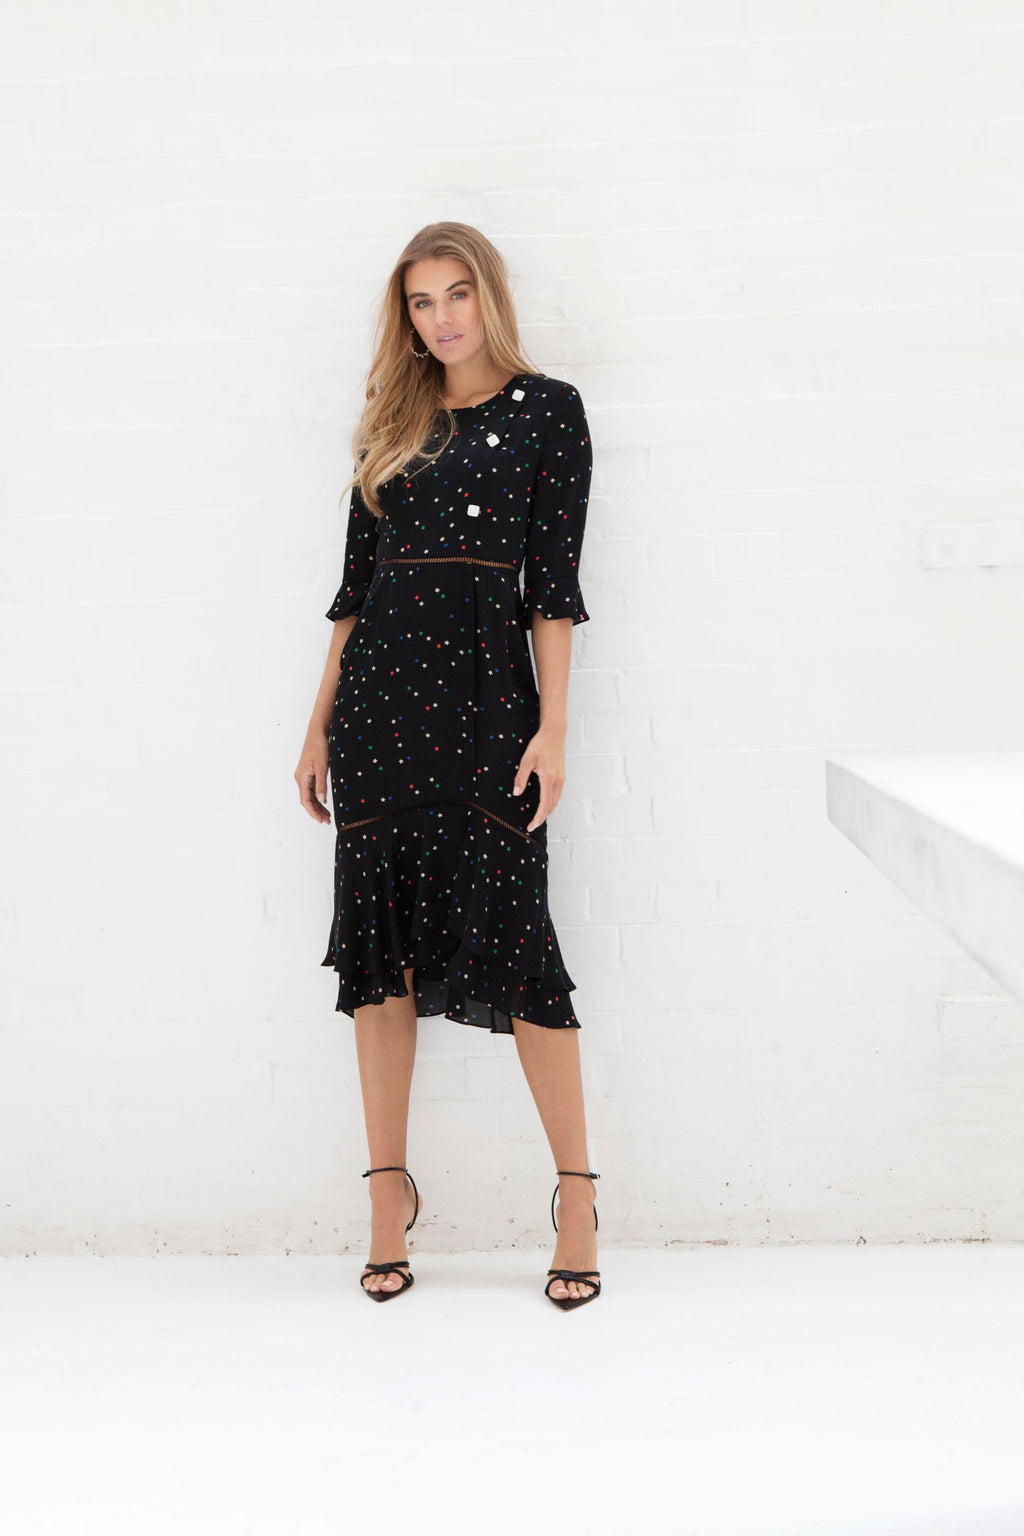 BELLAGIO star midi dress